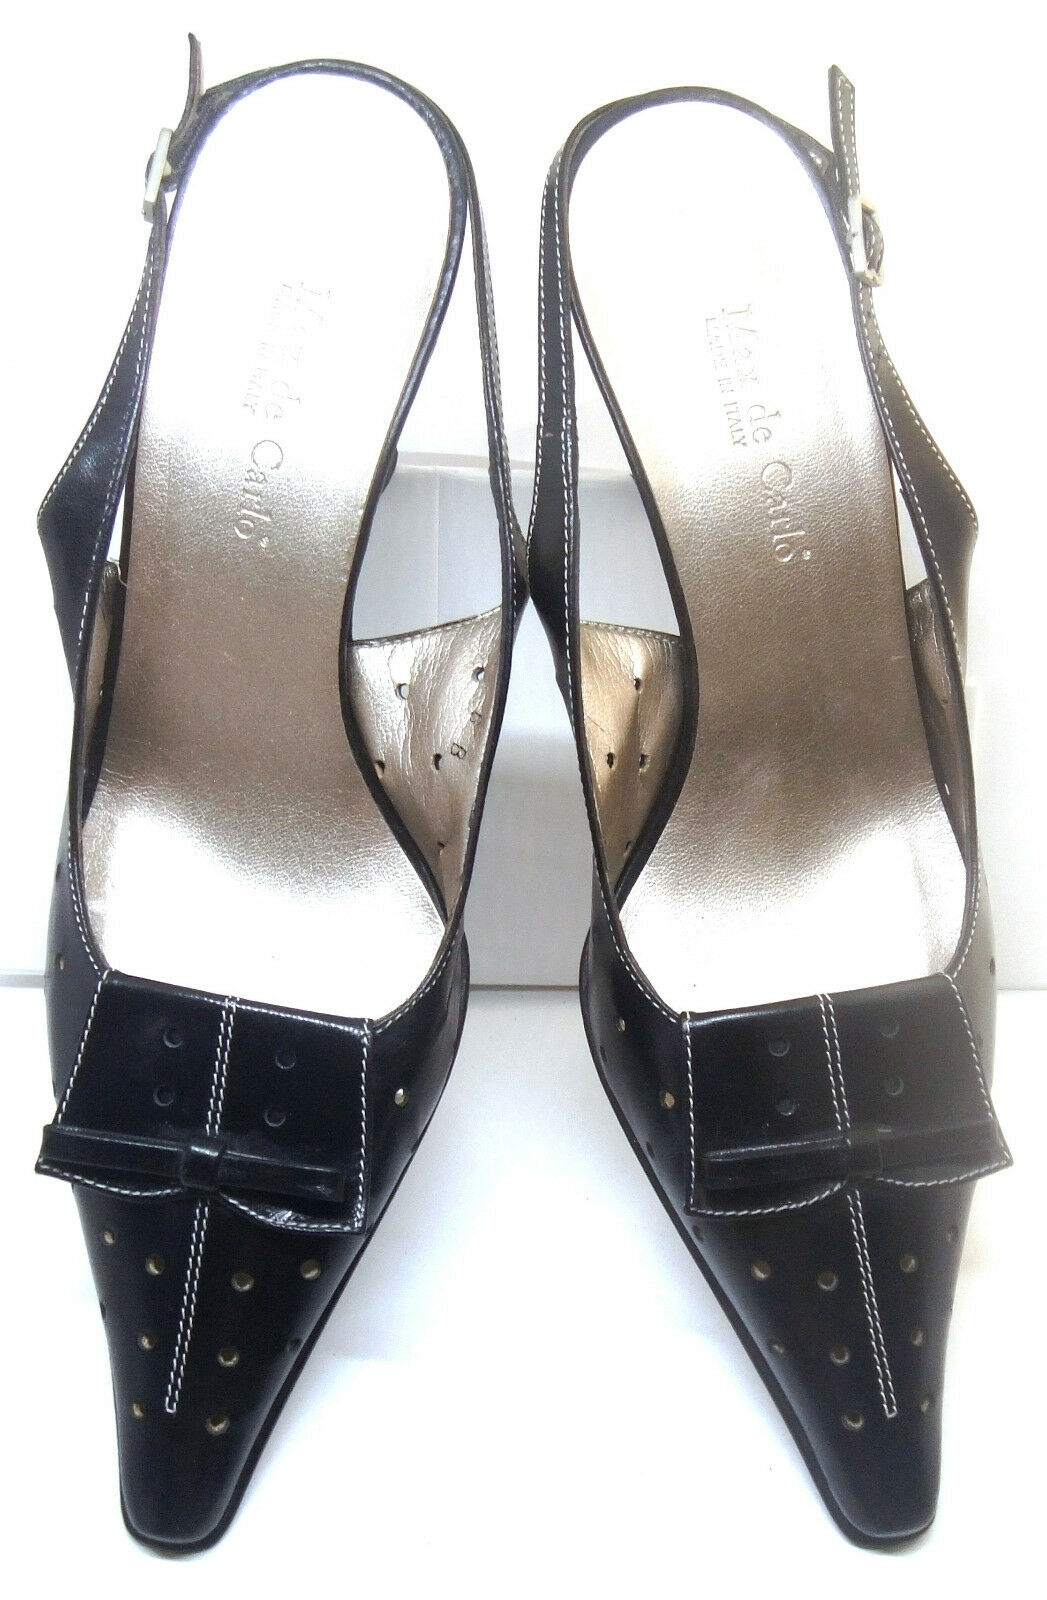 MAX DE CARLO Black Leather Slingback shoes w Bow Front & Perforation, , 6 B